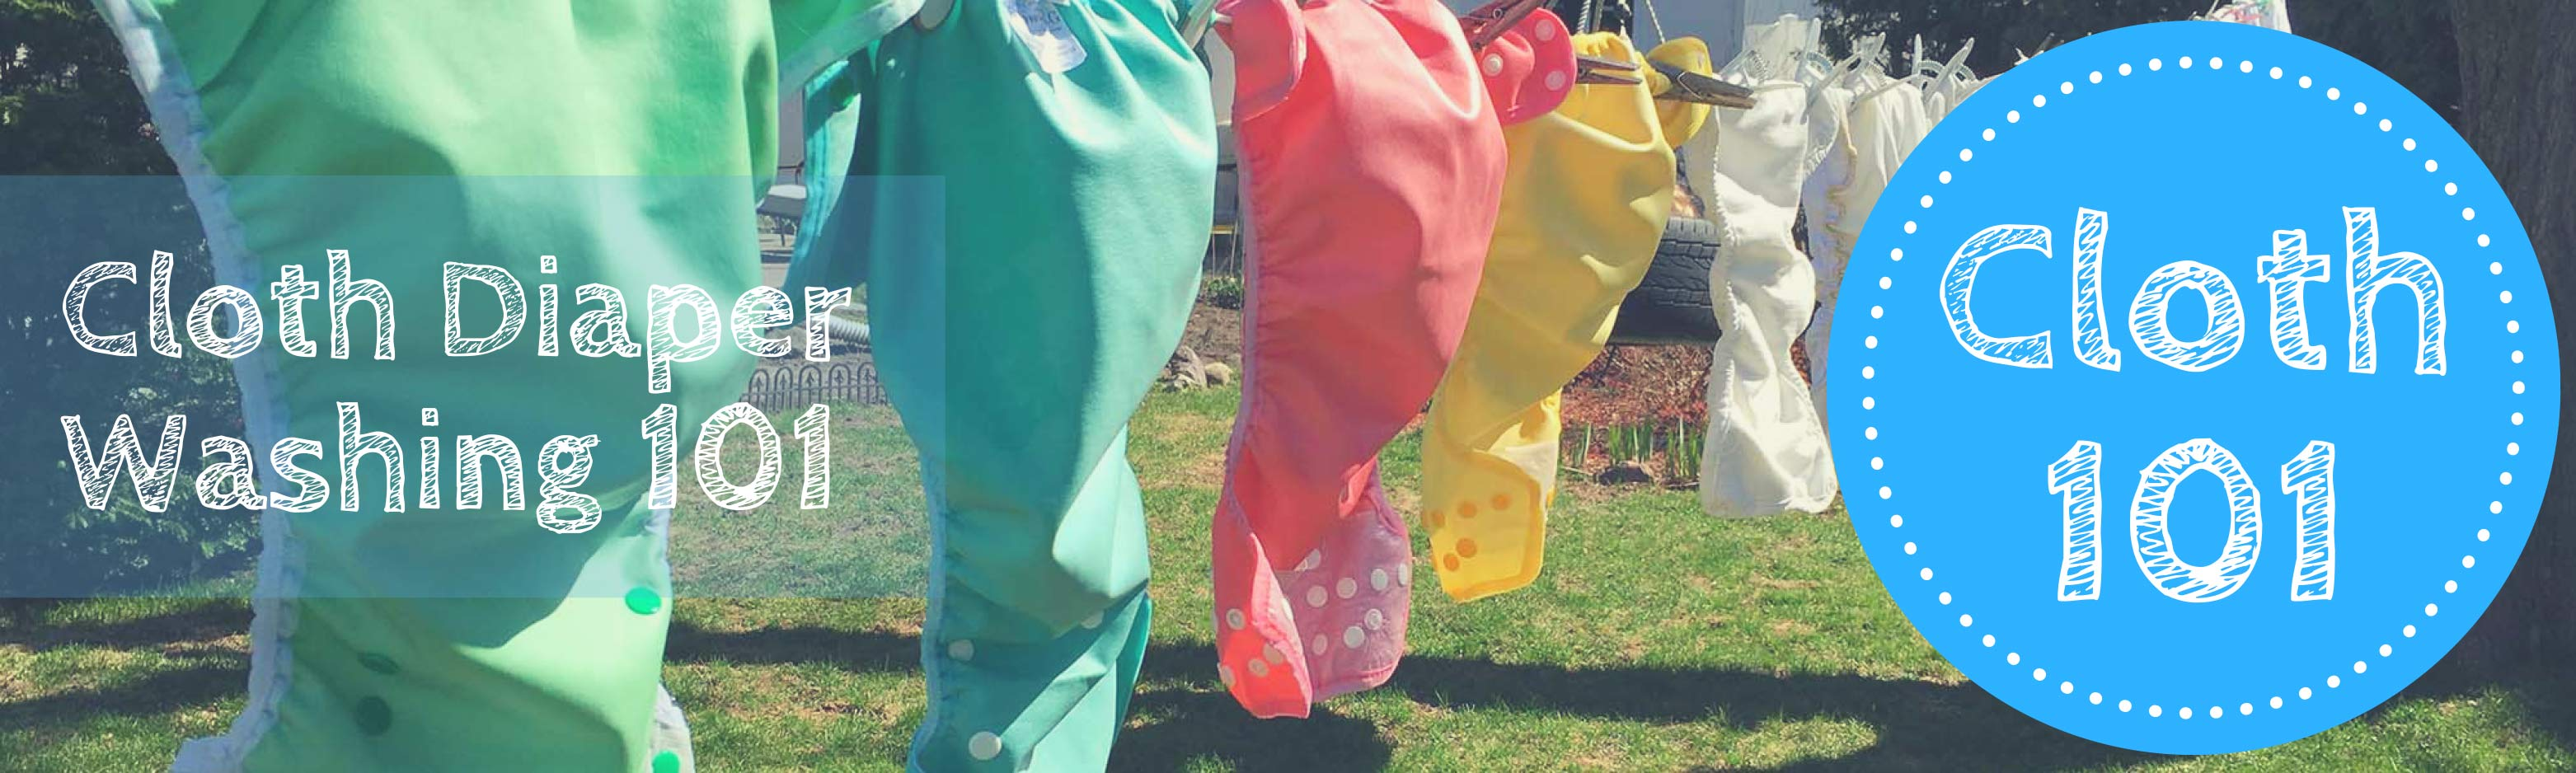 Mother-ease Cloth Diaper Washing 101 Blog